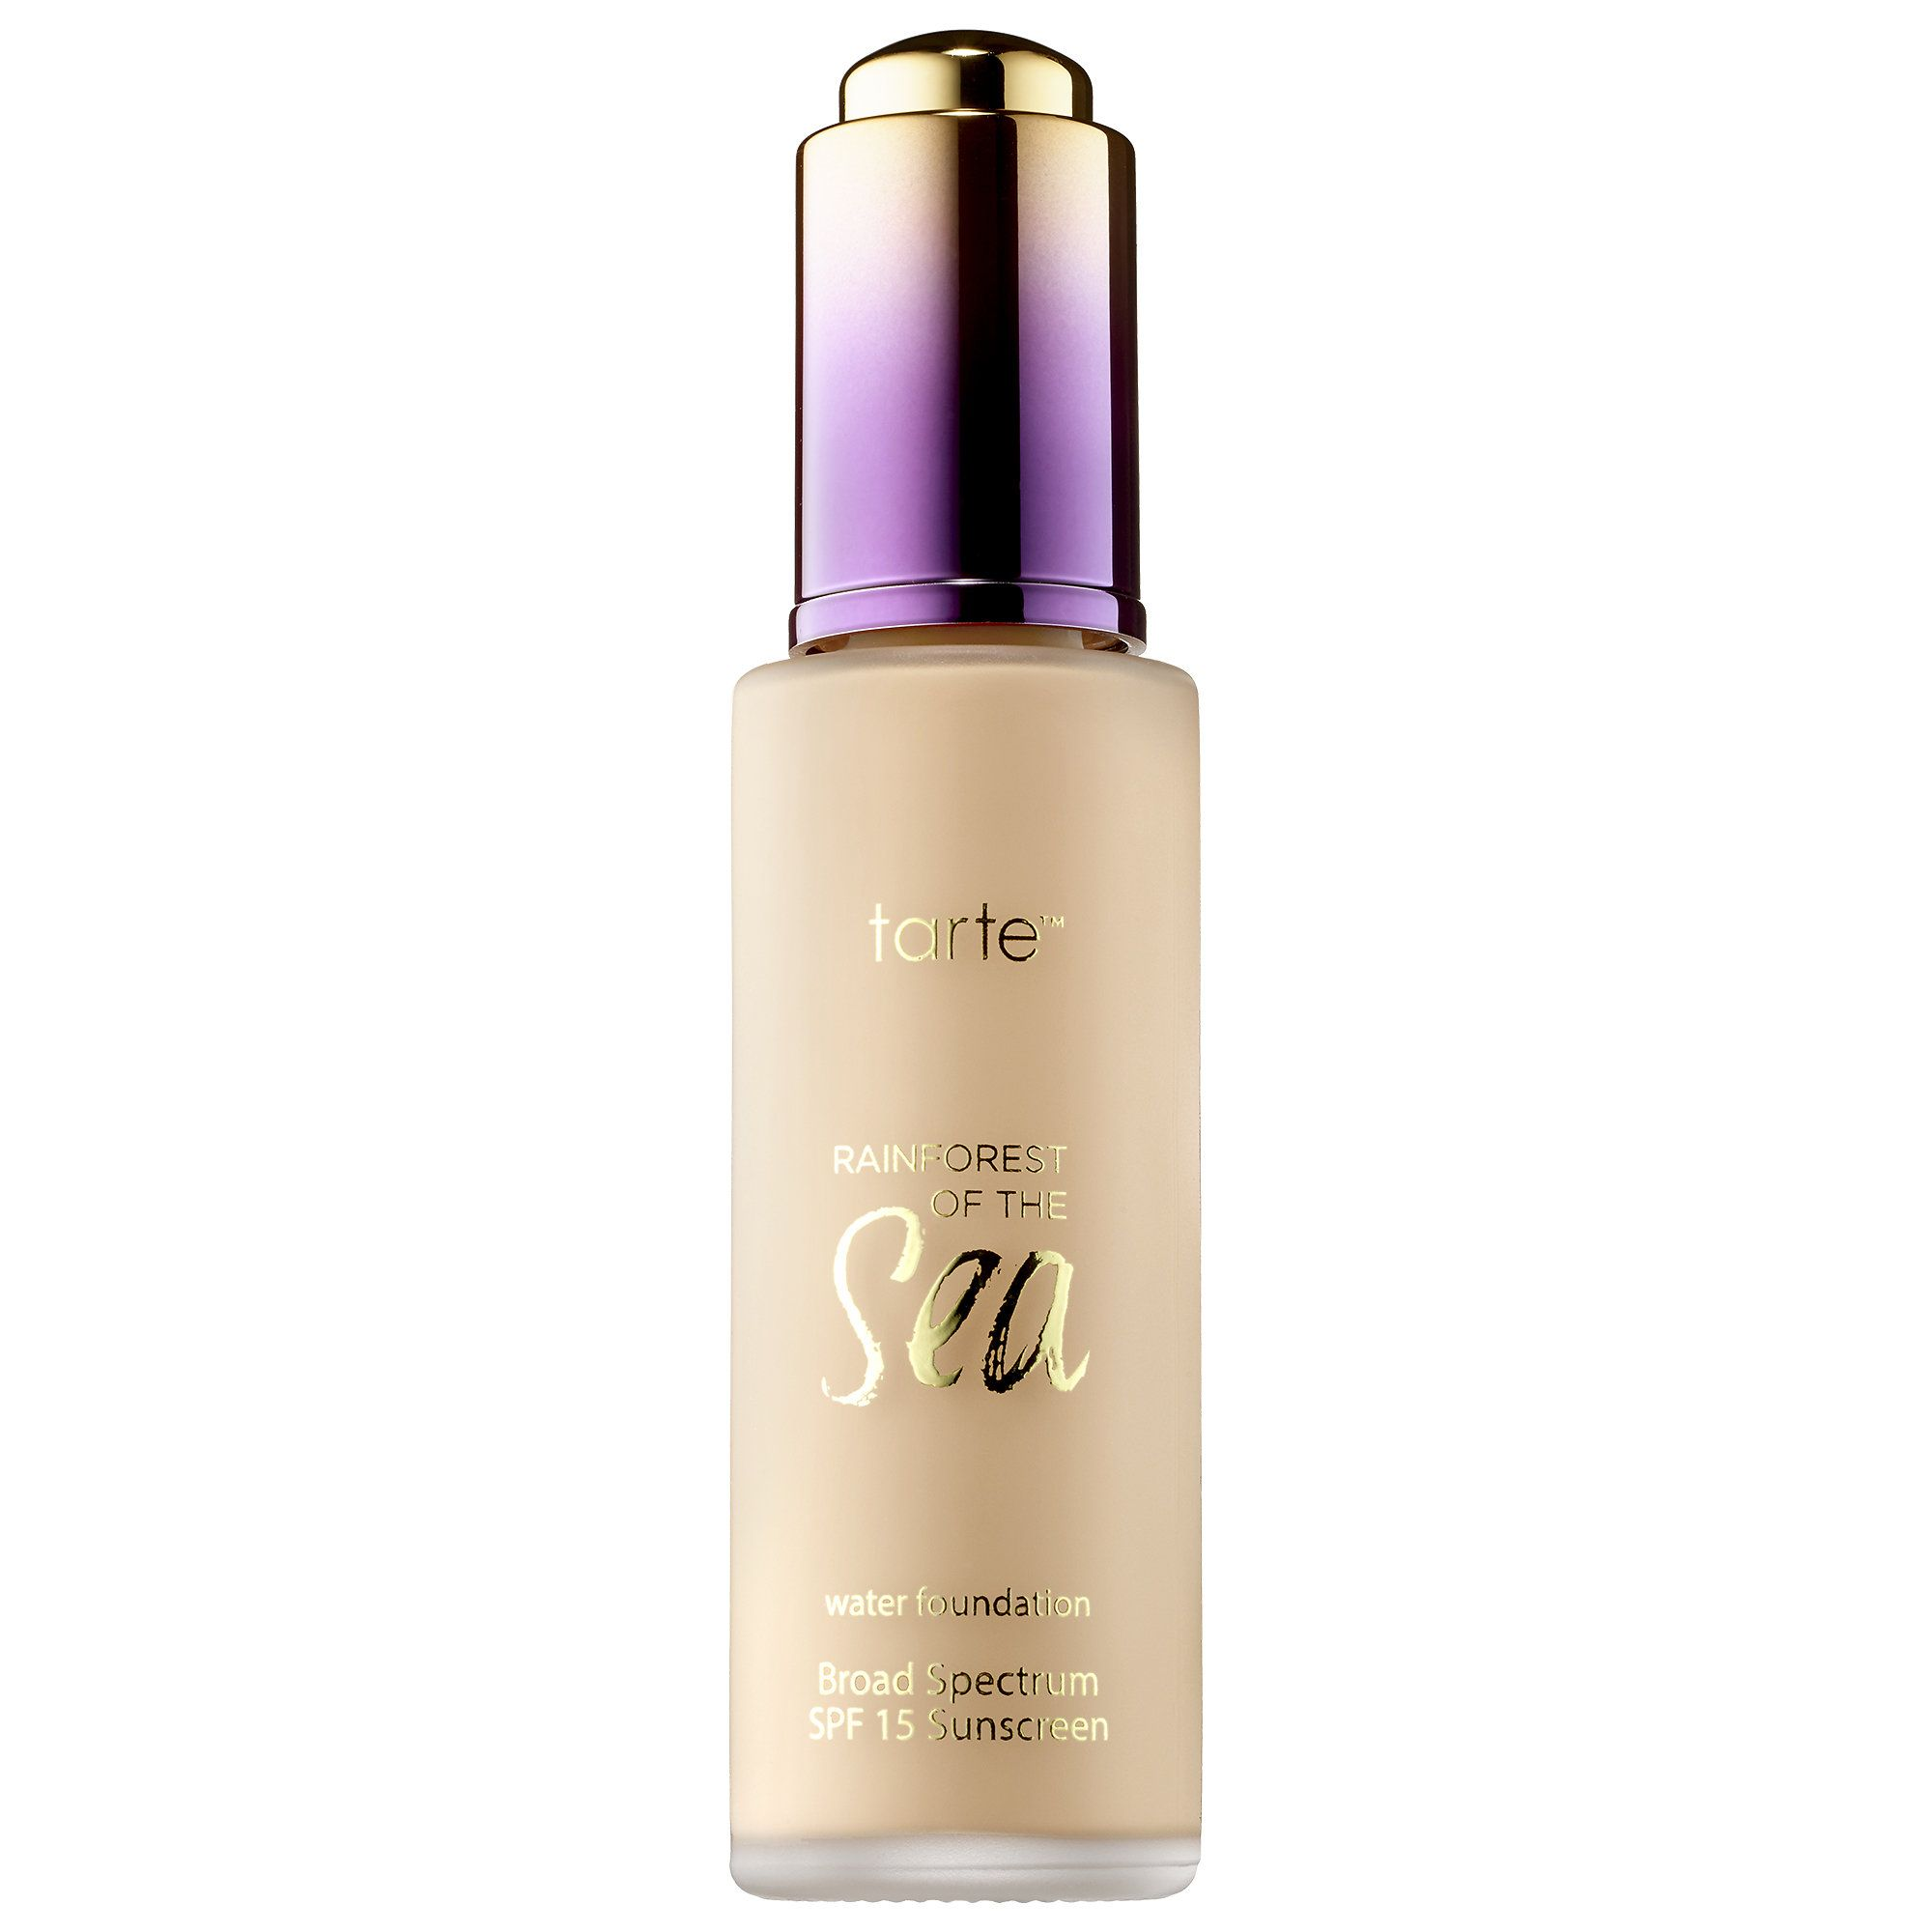 Water Foundation Broad Spectrum SPF 15 Rainforest of the